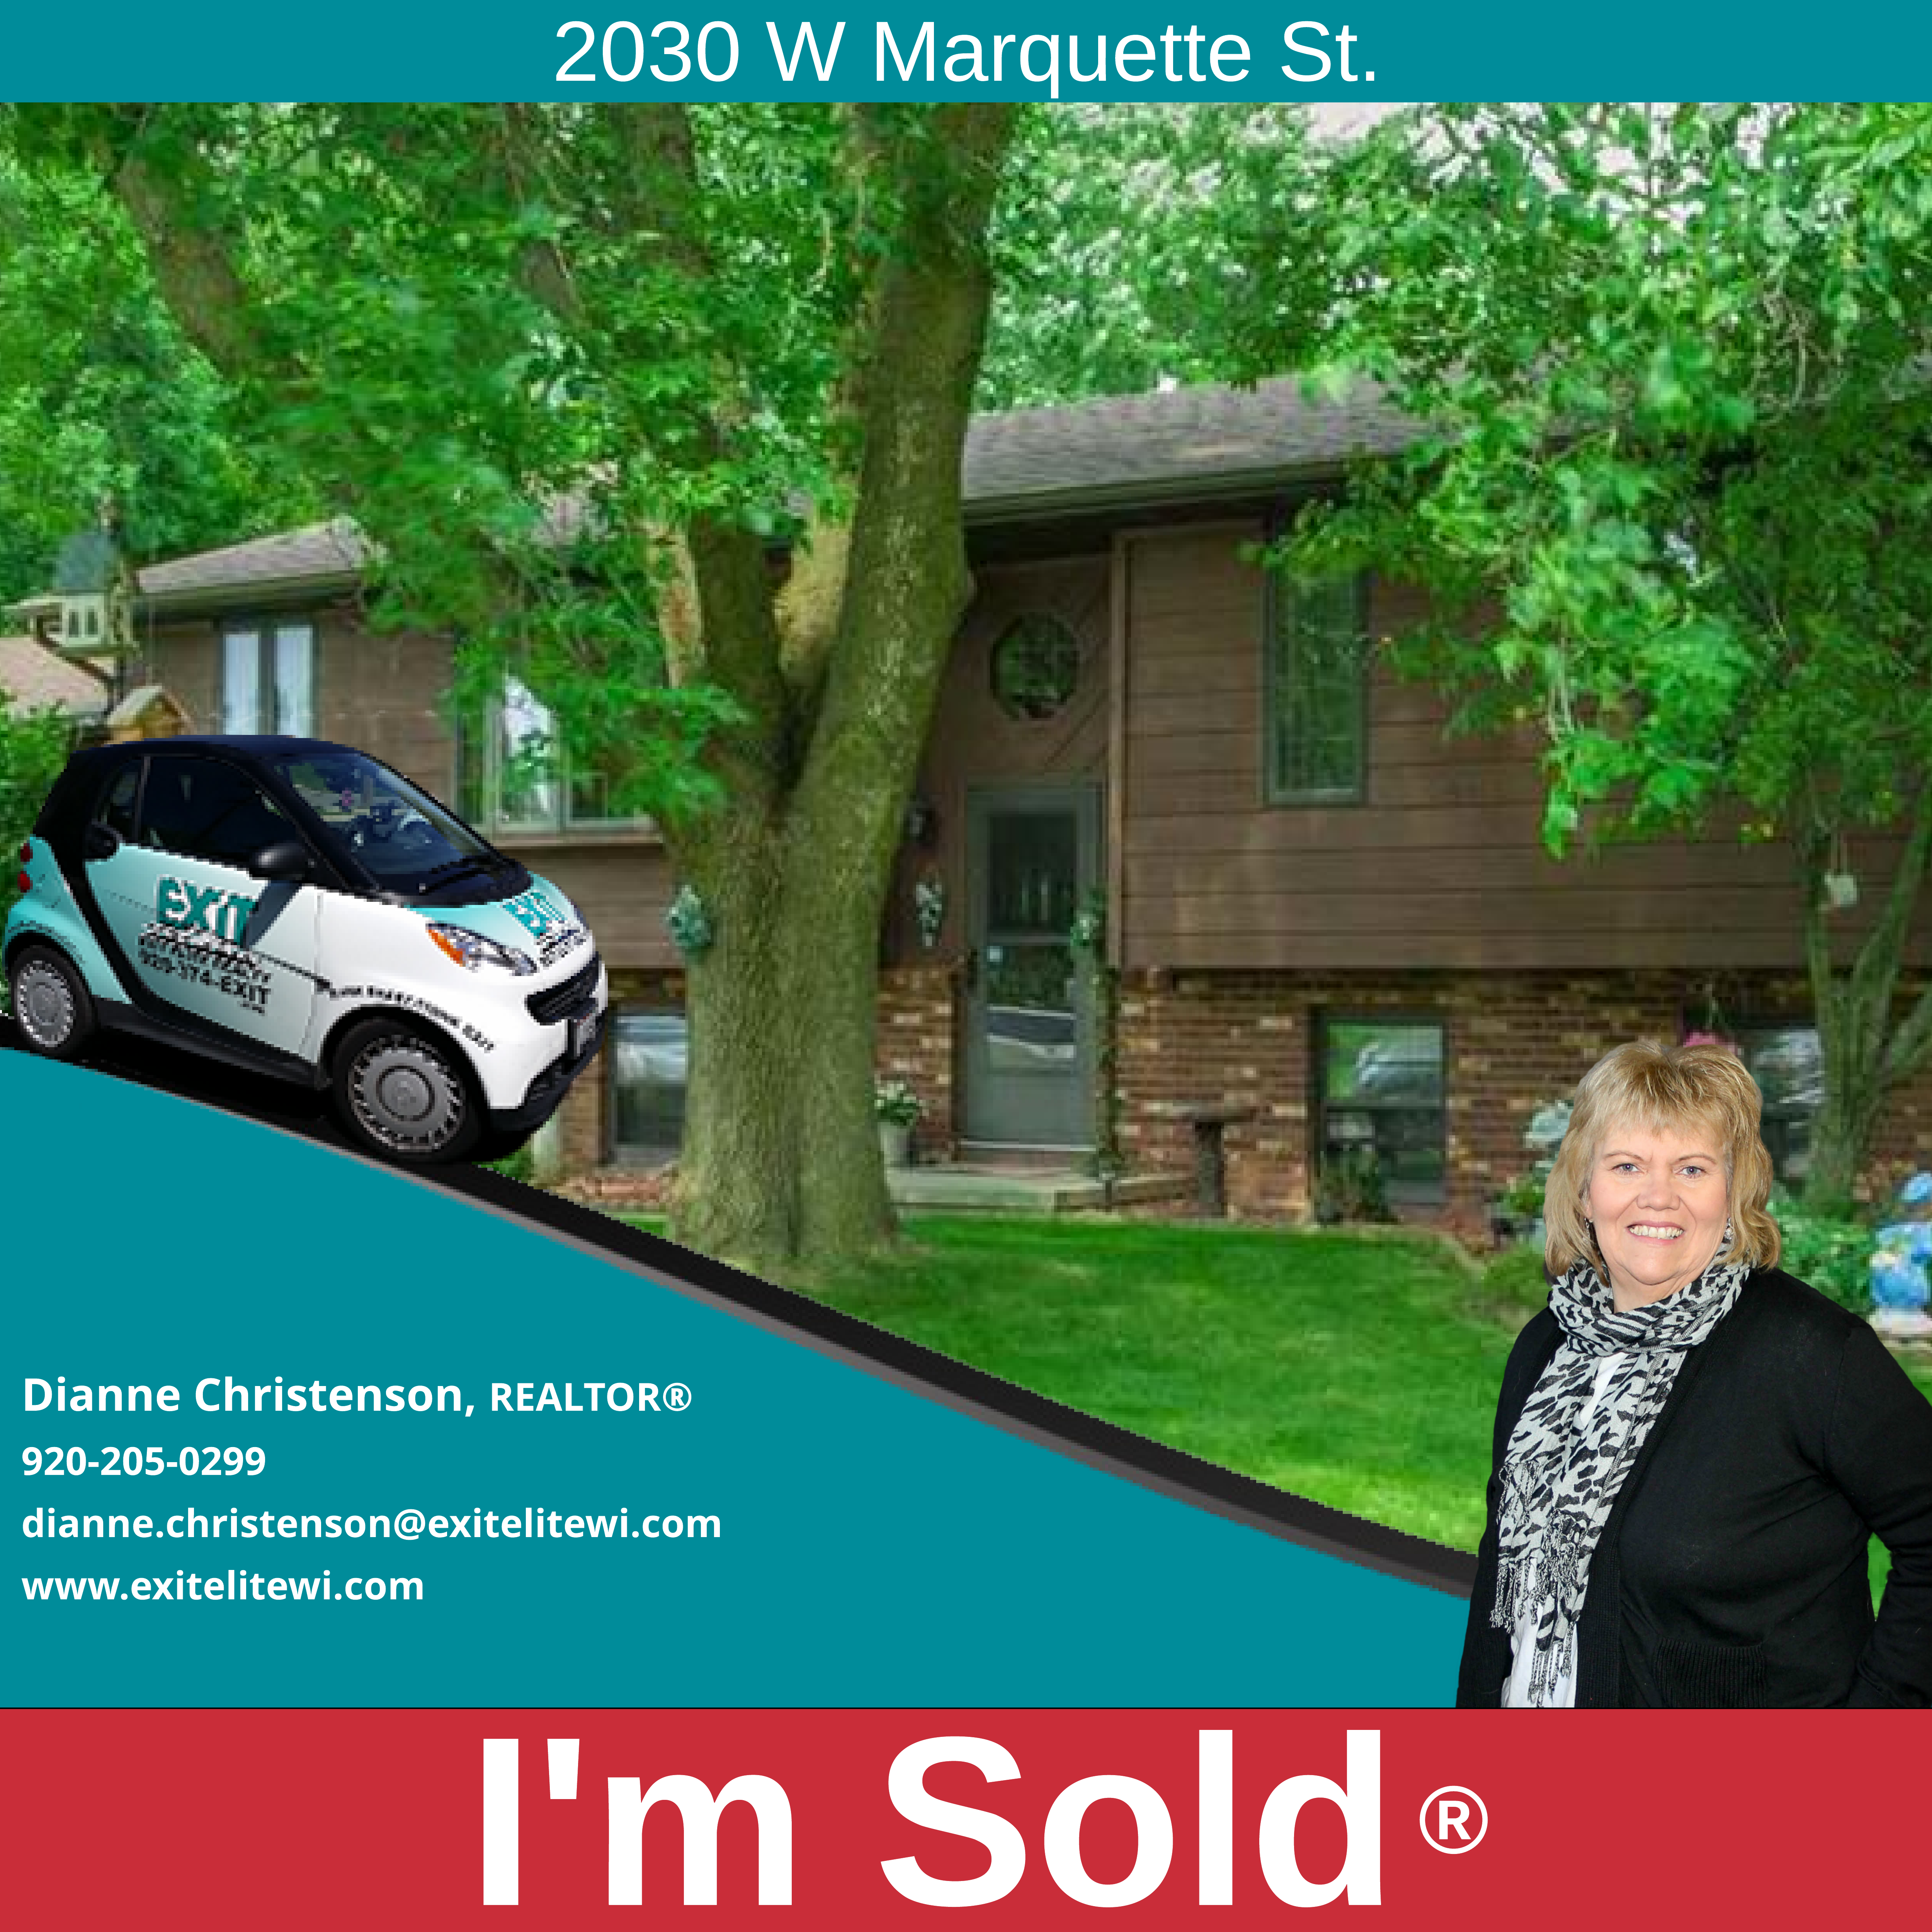 Just Sold! 2030 W Marquette St. Appleton, WI